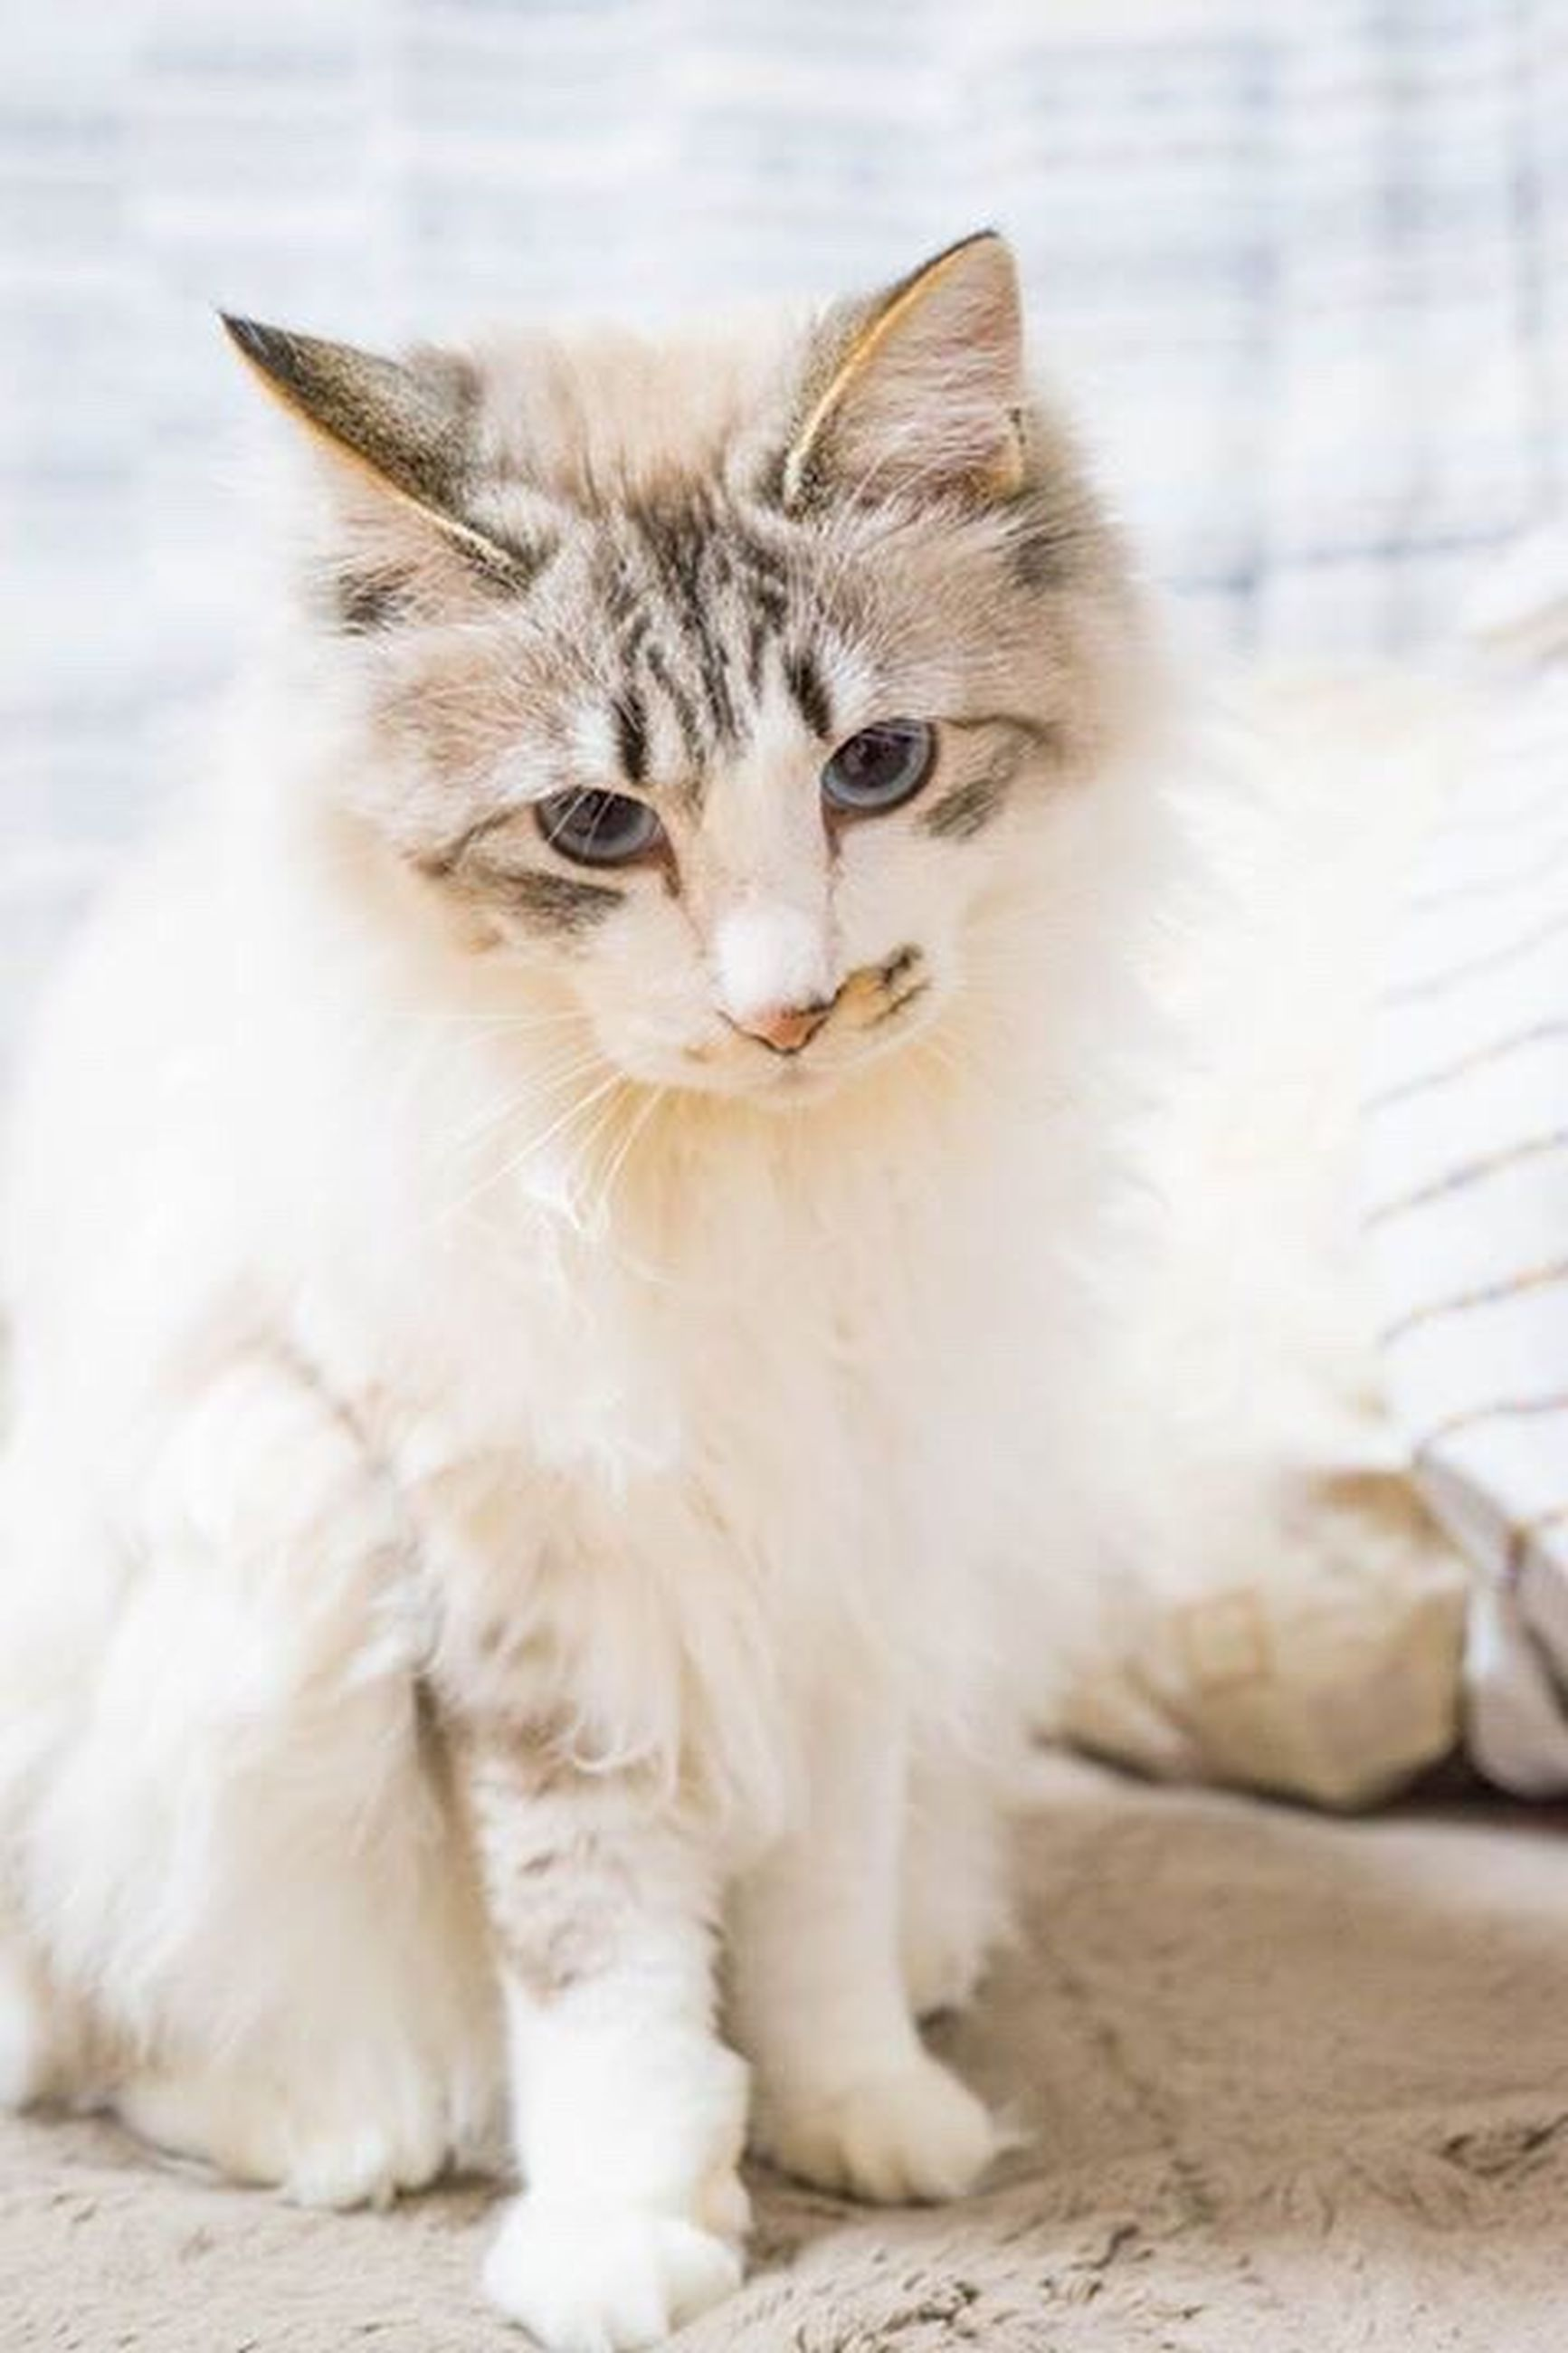 domestic cat, pets, domestic animals, animal themes, one animal, no people, mammal, feline, close-up, day, outdoors